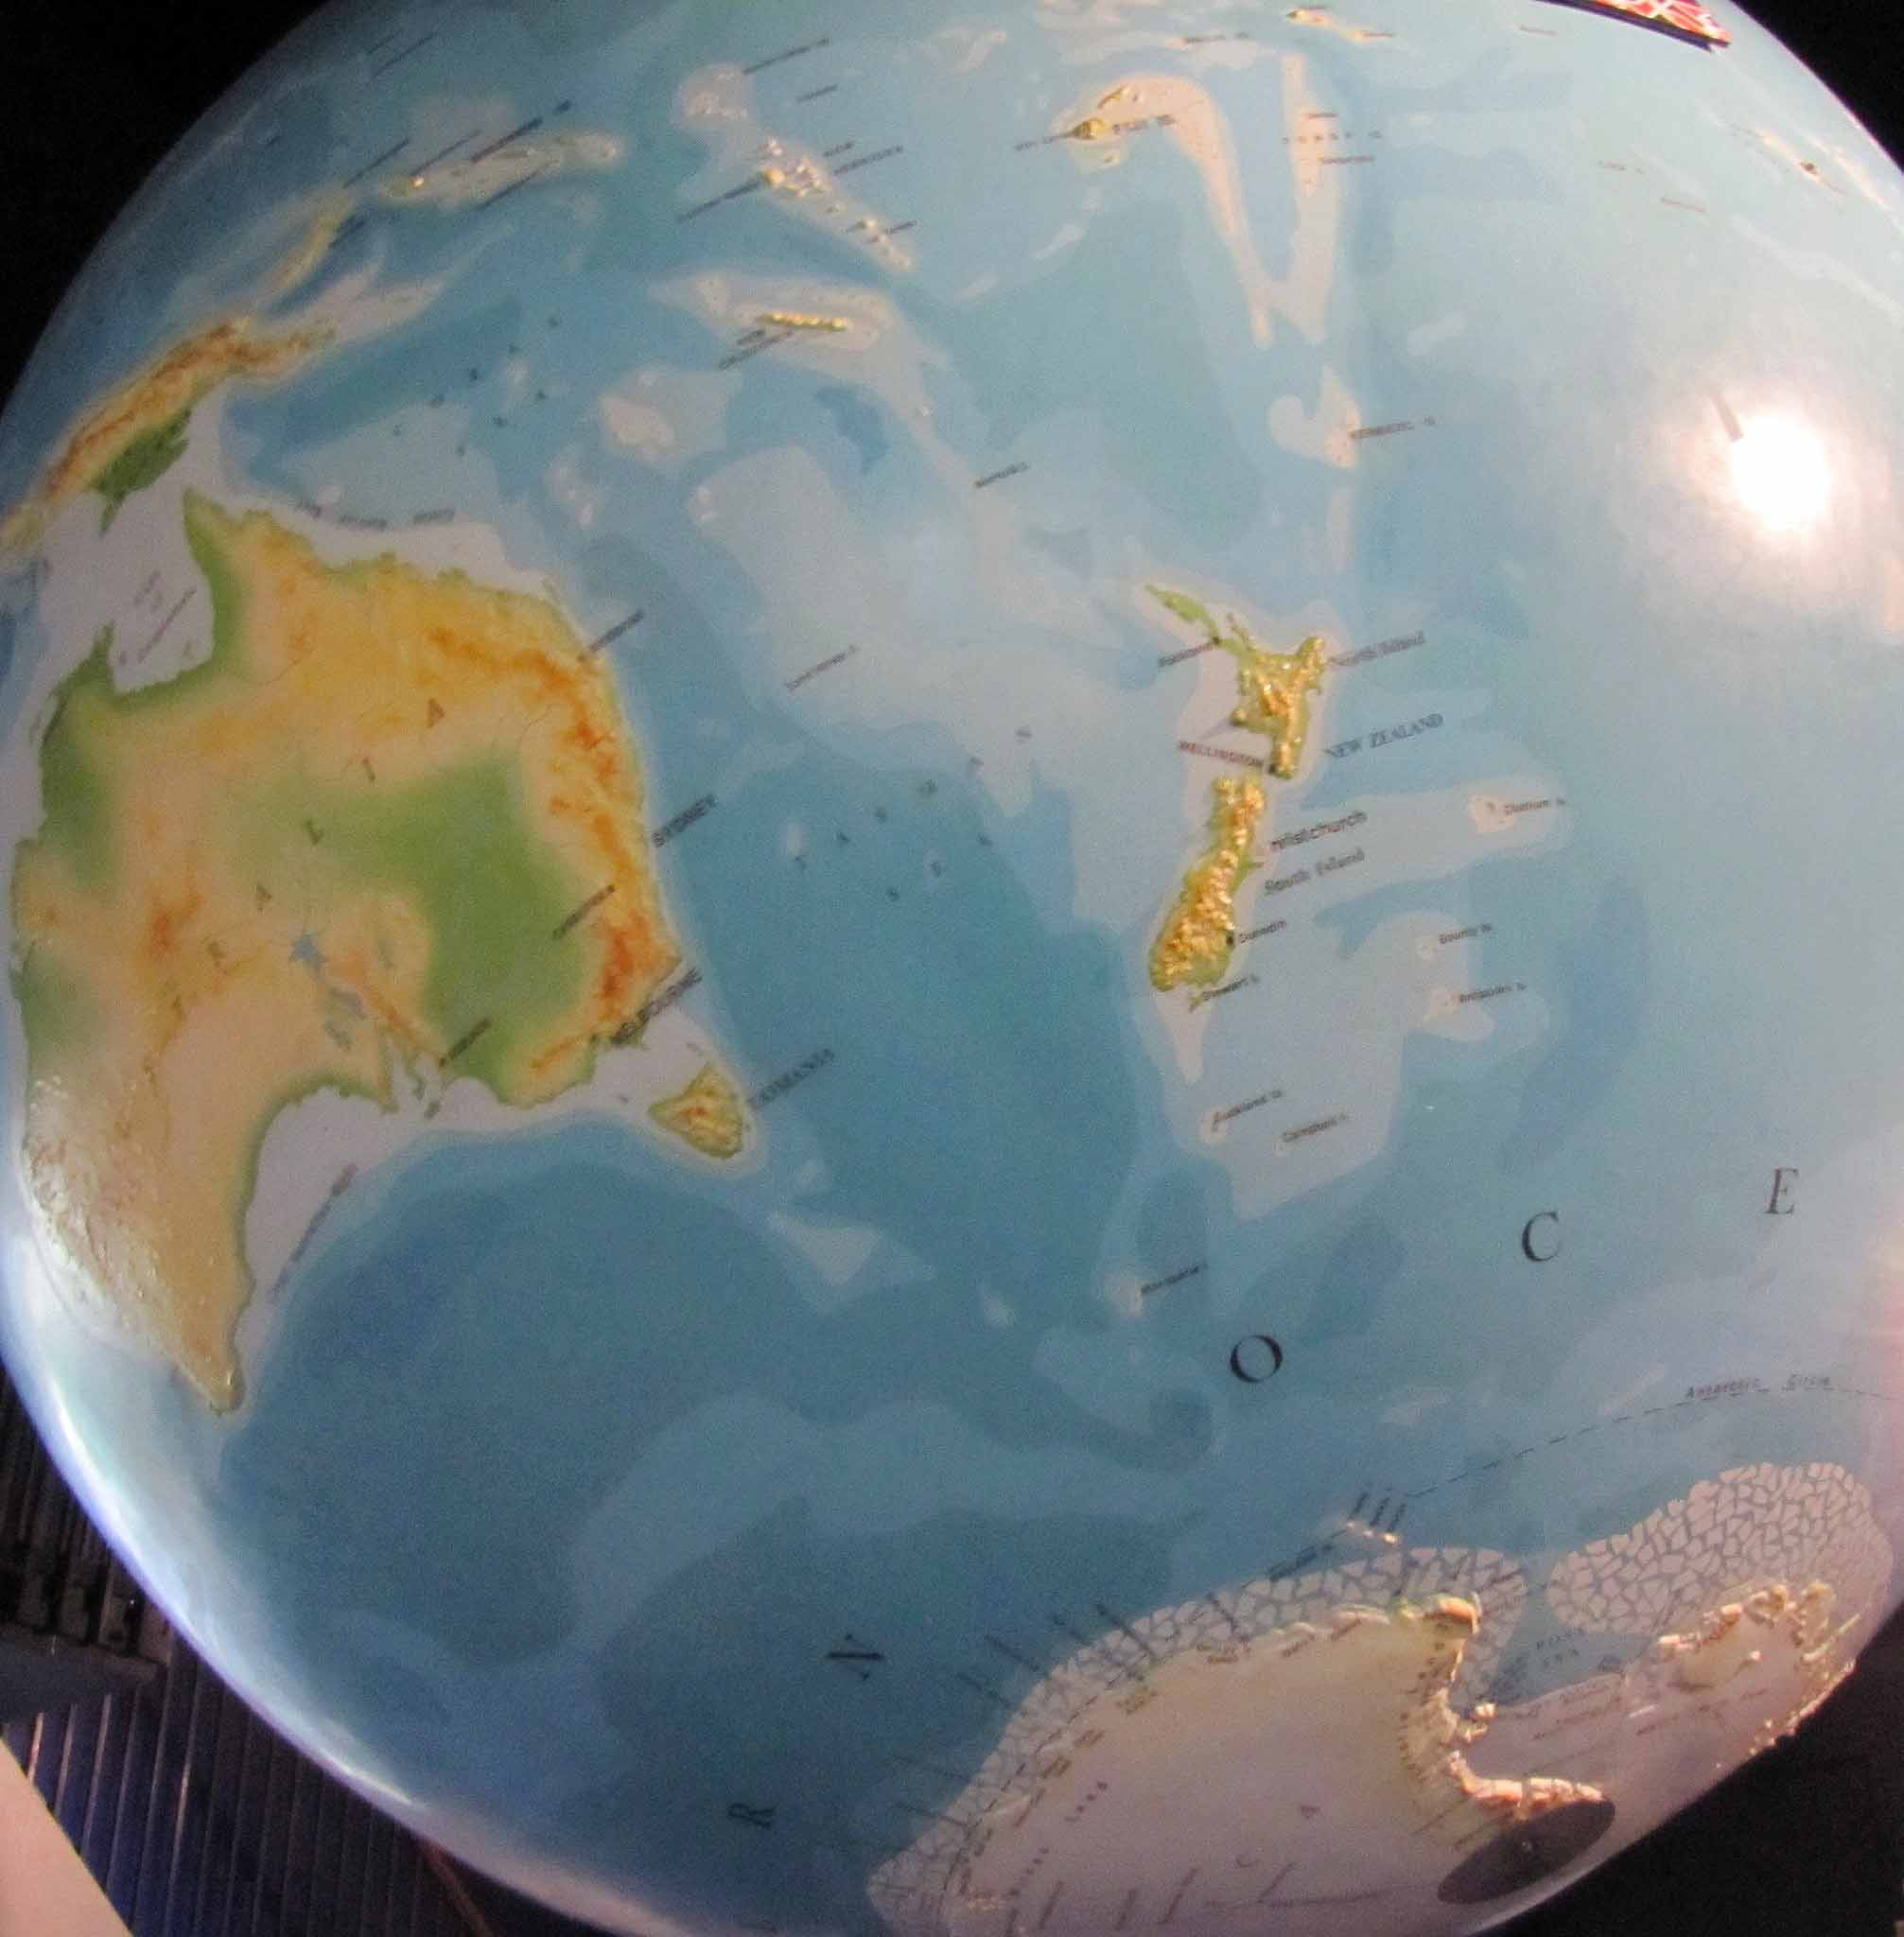 Where is new zealand on the map its disappeared kiwi travel photo of the globe globe showing new zealand antarctica and australia gumiabroncs Gallery